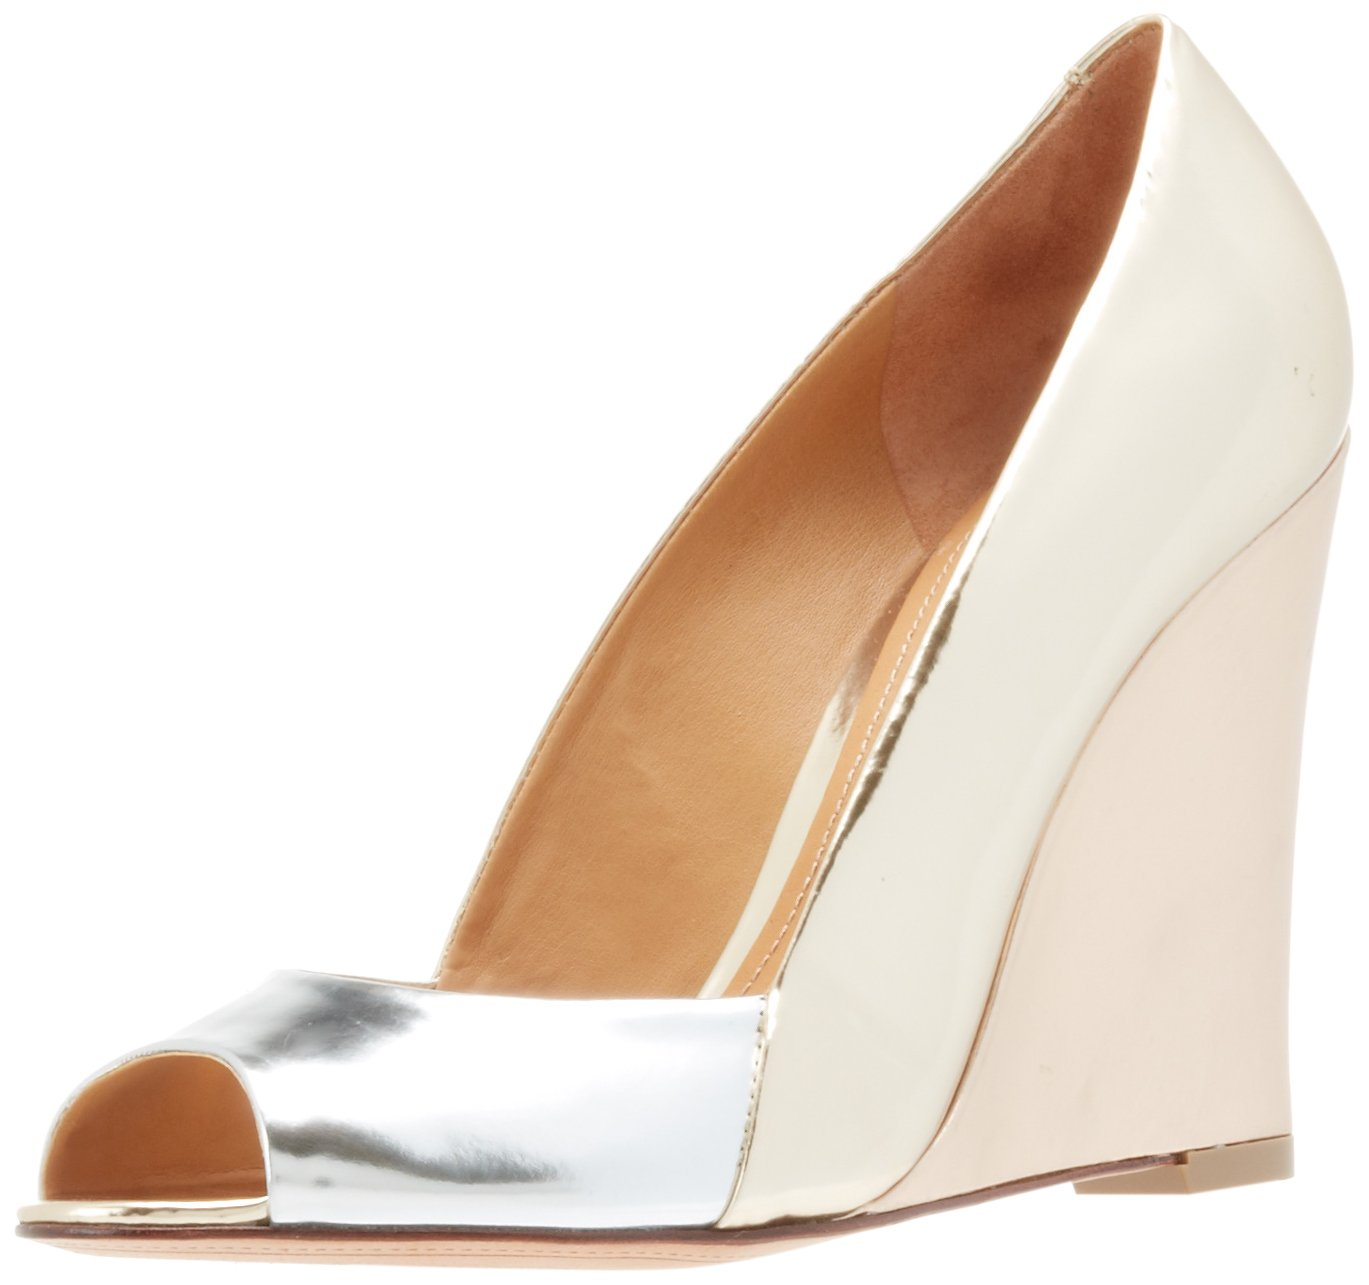 has anyone hear ofworn schutz shoes wedding wedges wedding wedge shoes They re over so I m a little scared to commit but am also at the point where I m ready to just splurge on wedges I actually like